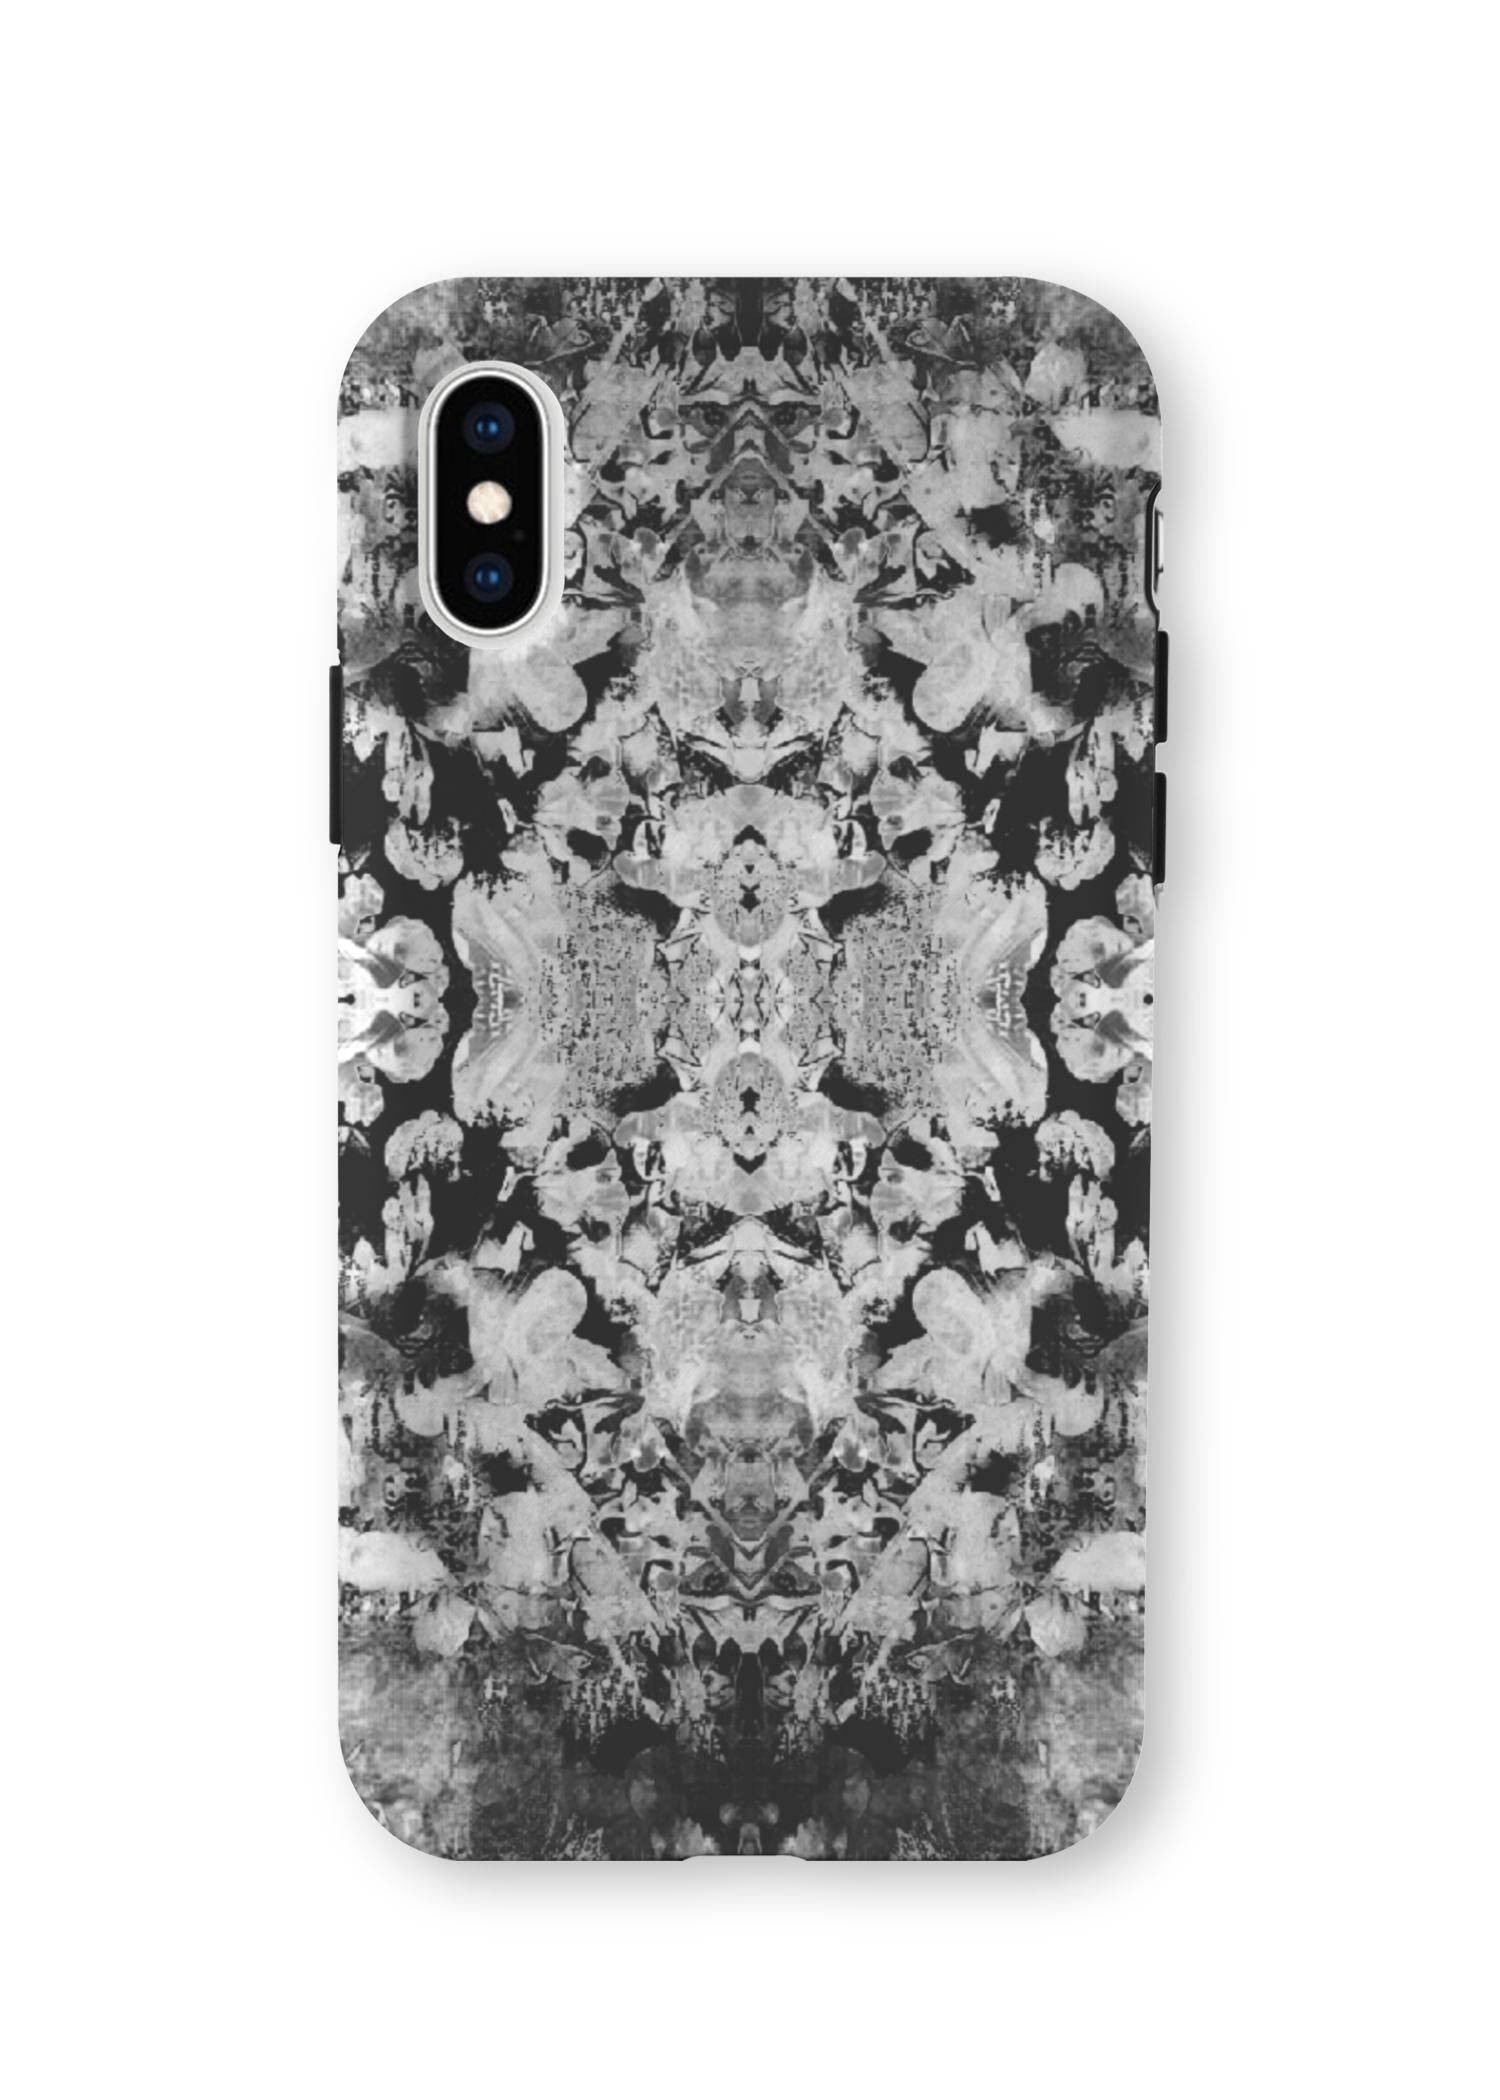 Lindal.toews iPhone Case - Garden Grey by Lindal.toews Original Artist  - Size: Extra Small